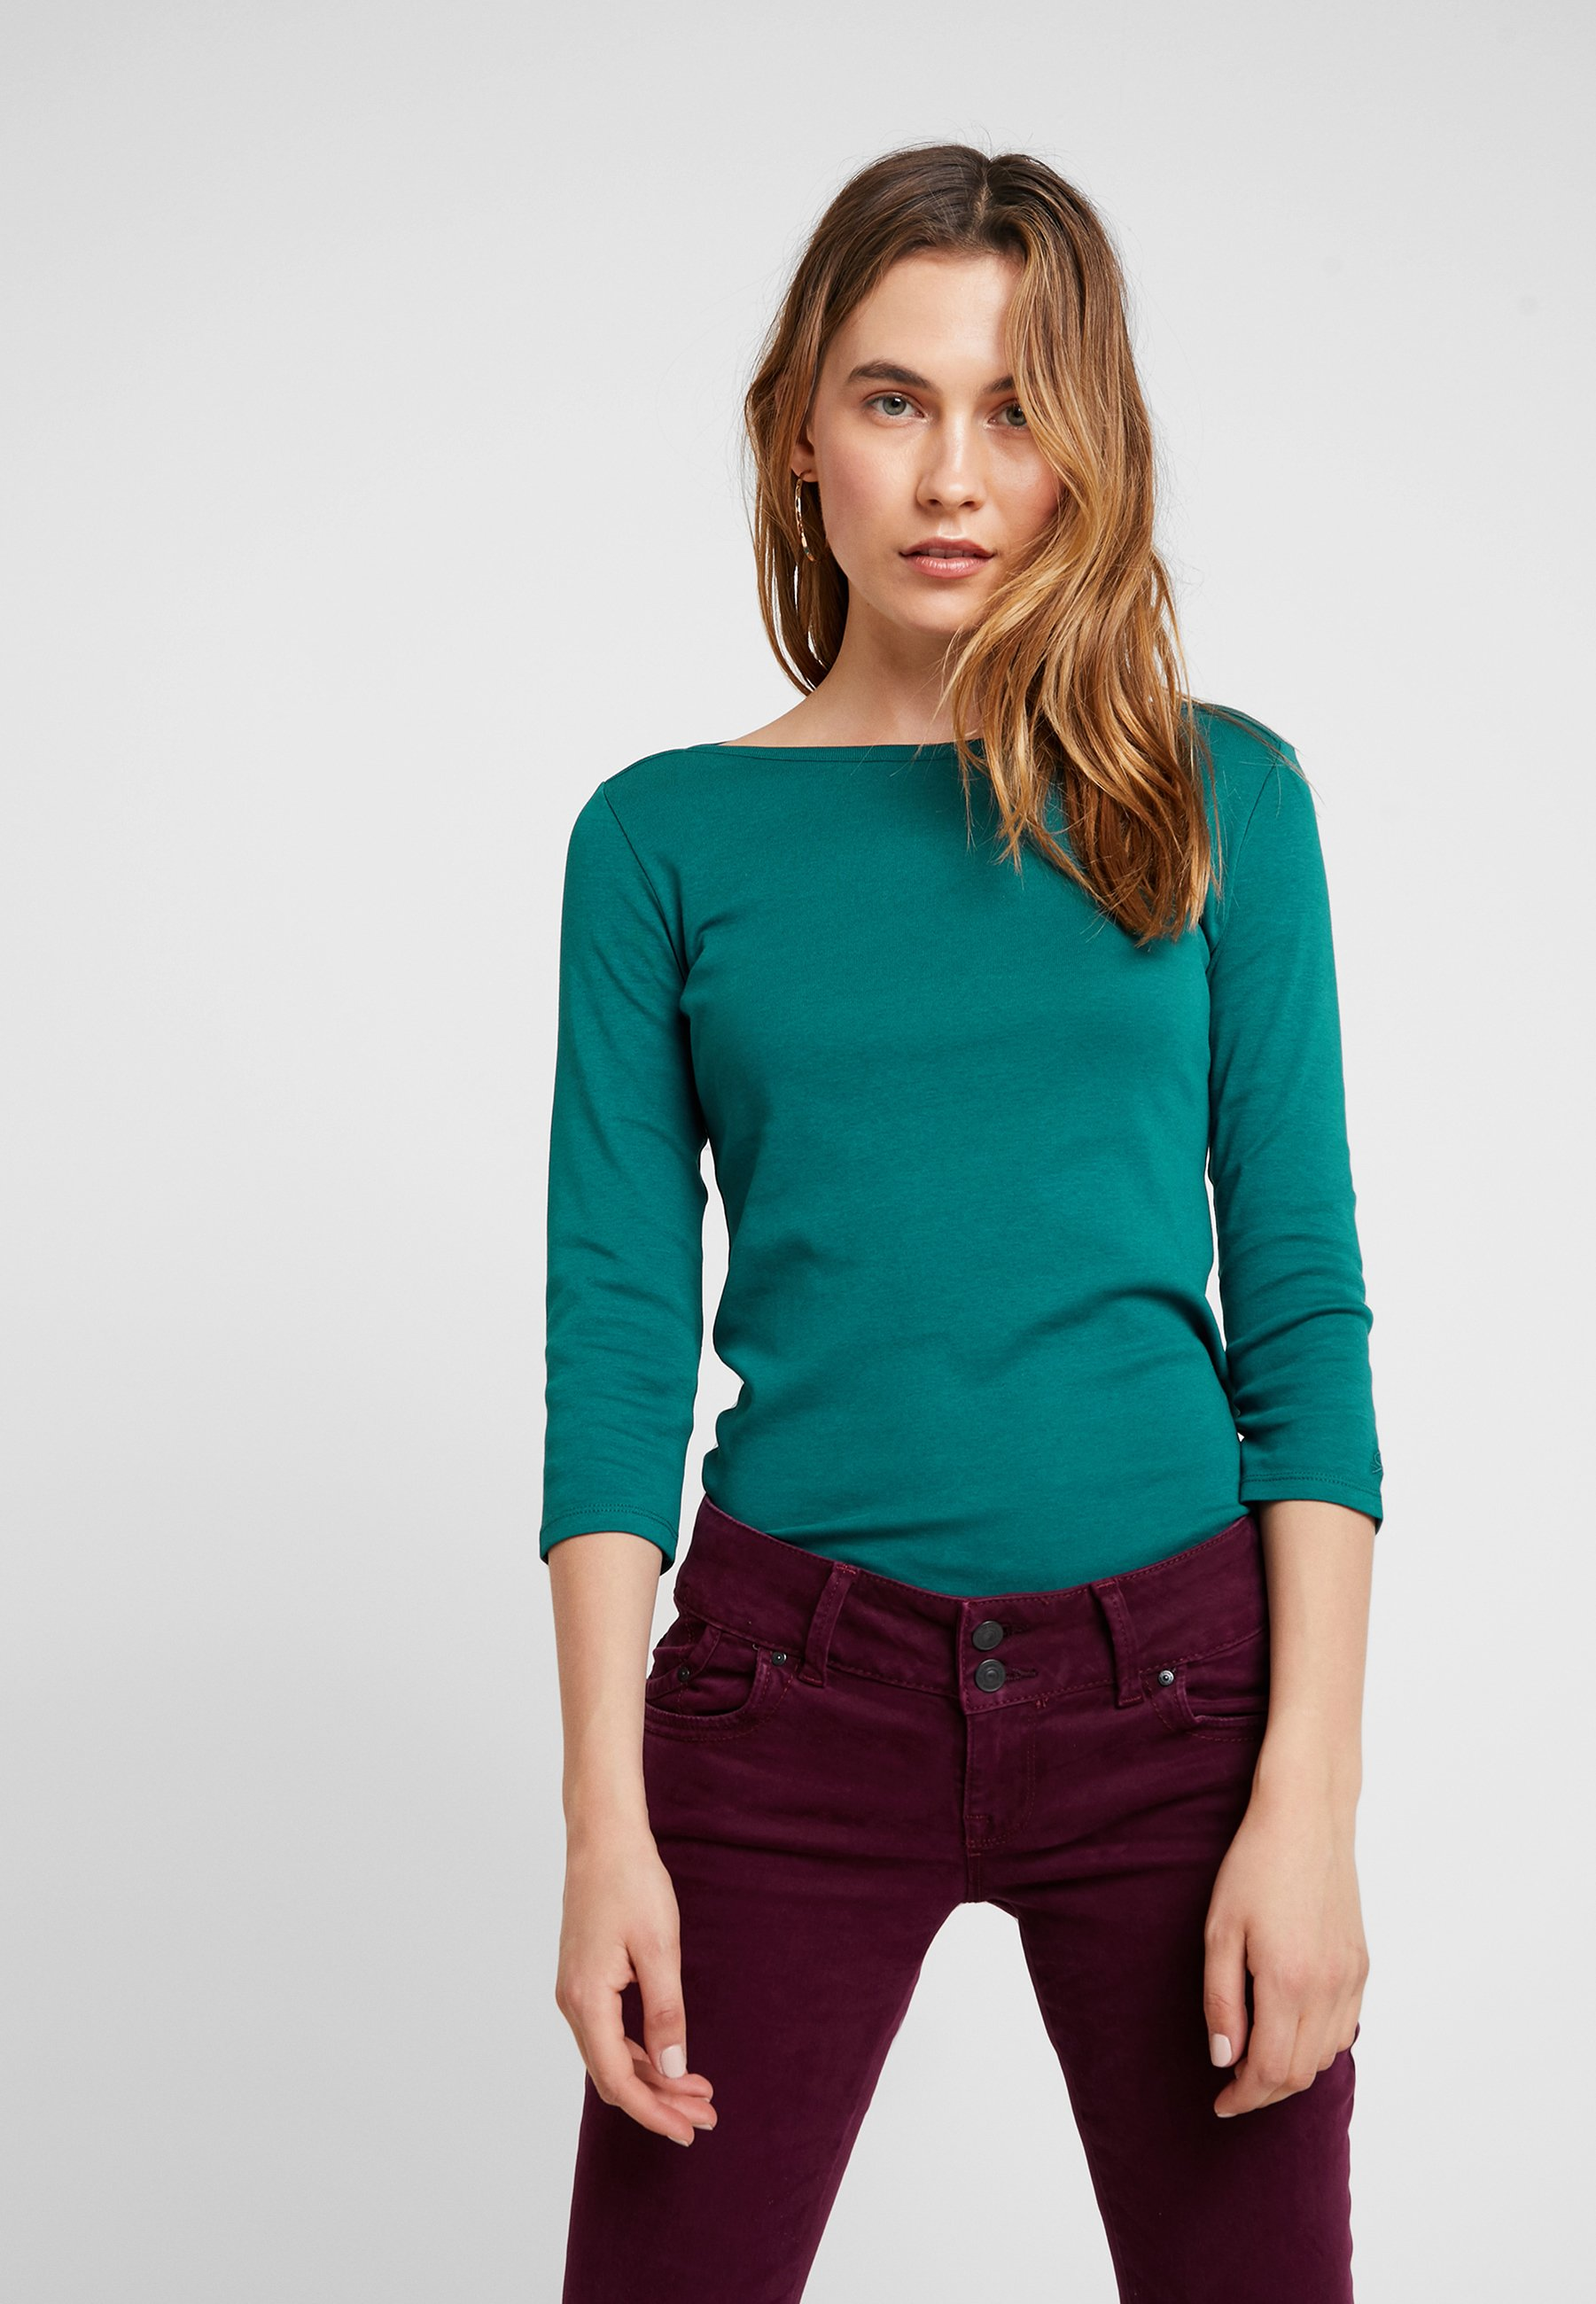 Sleeve shirt Benetton 4 Green TeeT À Manches Longues Forest 3 Boatneck kXO8n0wP